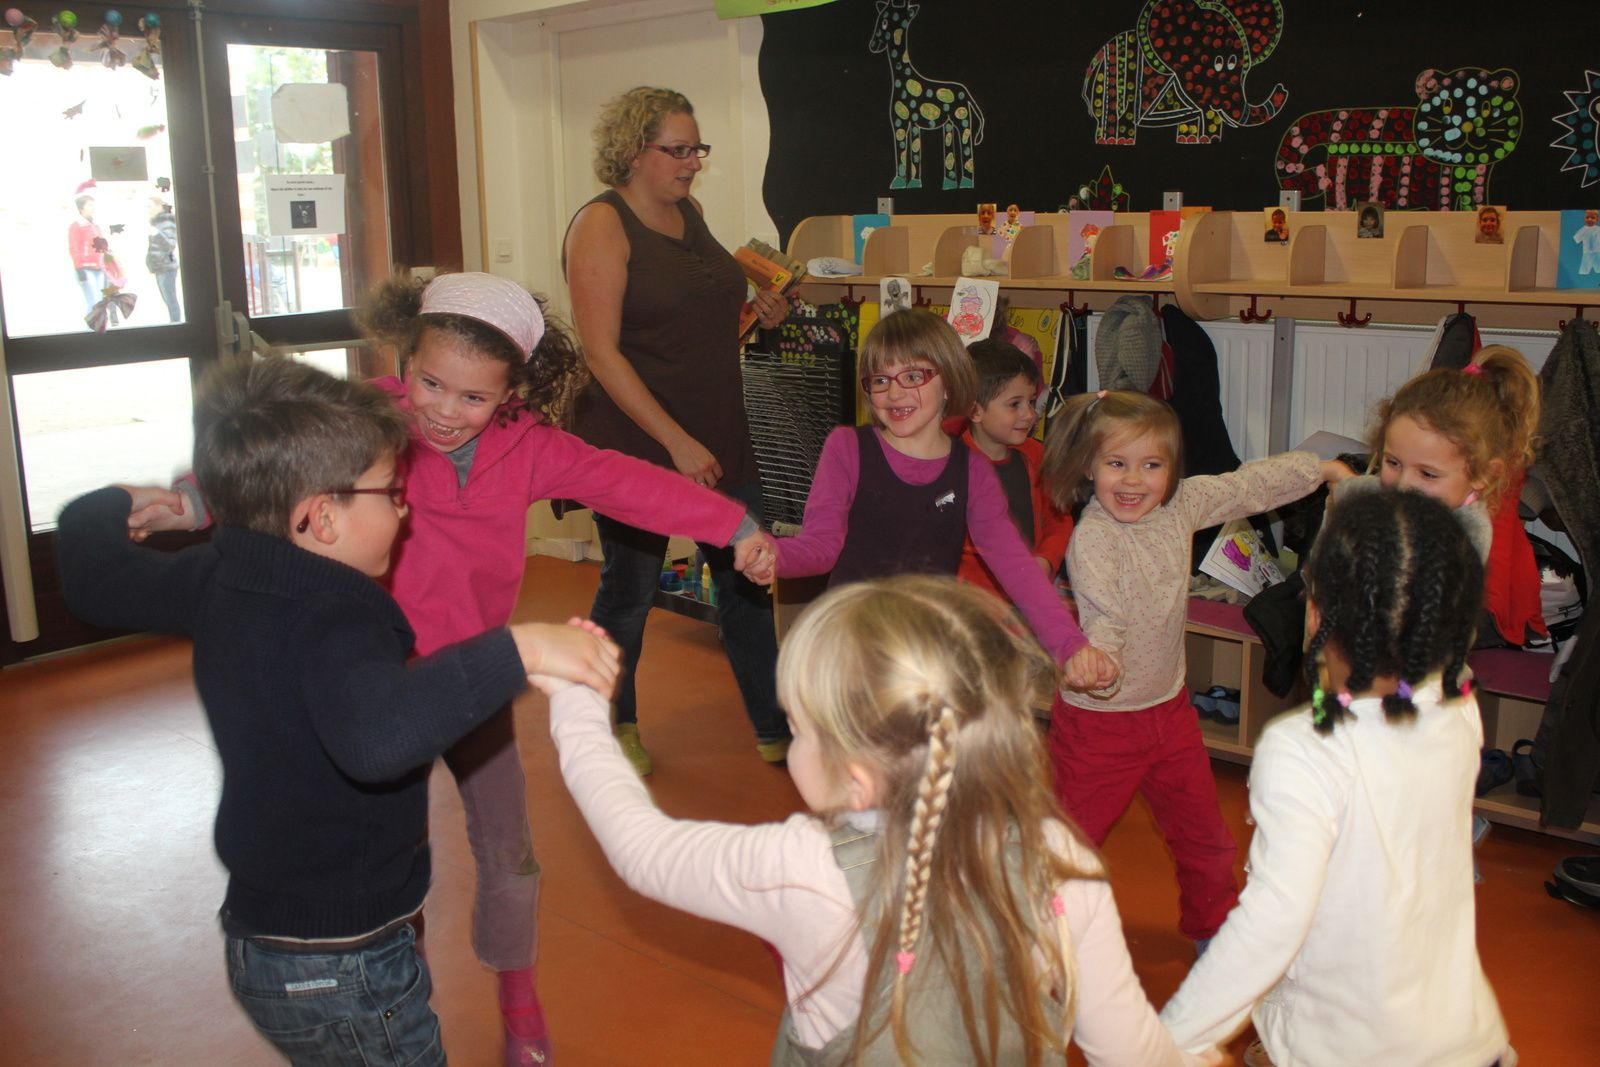 ON DANSE ET ON CREE UN SPECTACLE ....on assaie, on reflechit, on recommence, on assemble, on partage.